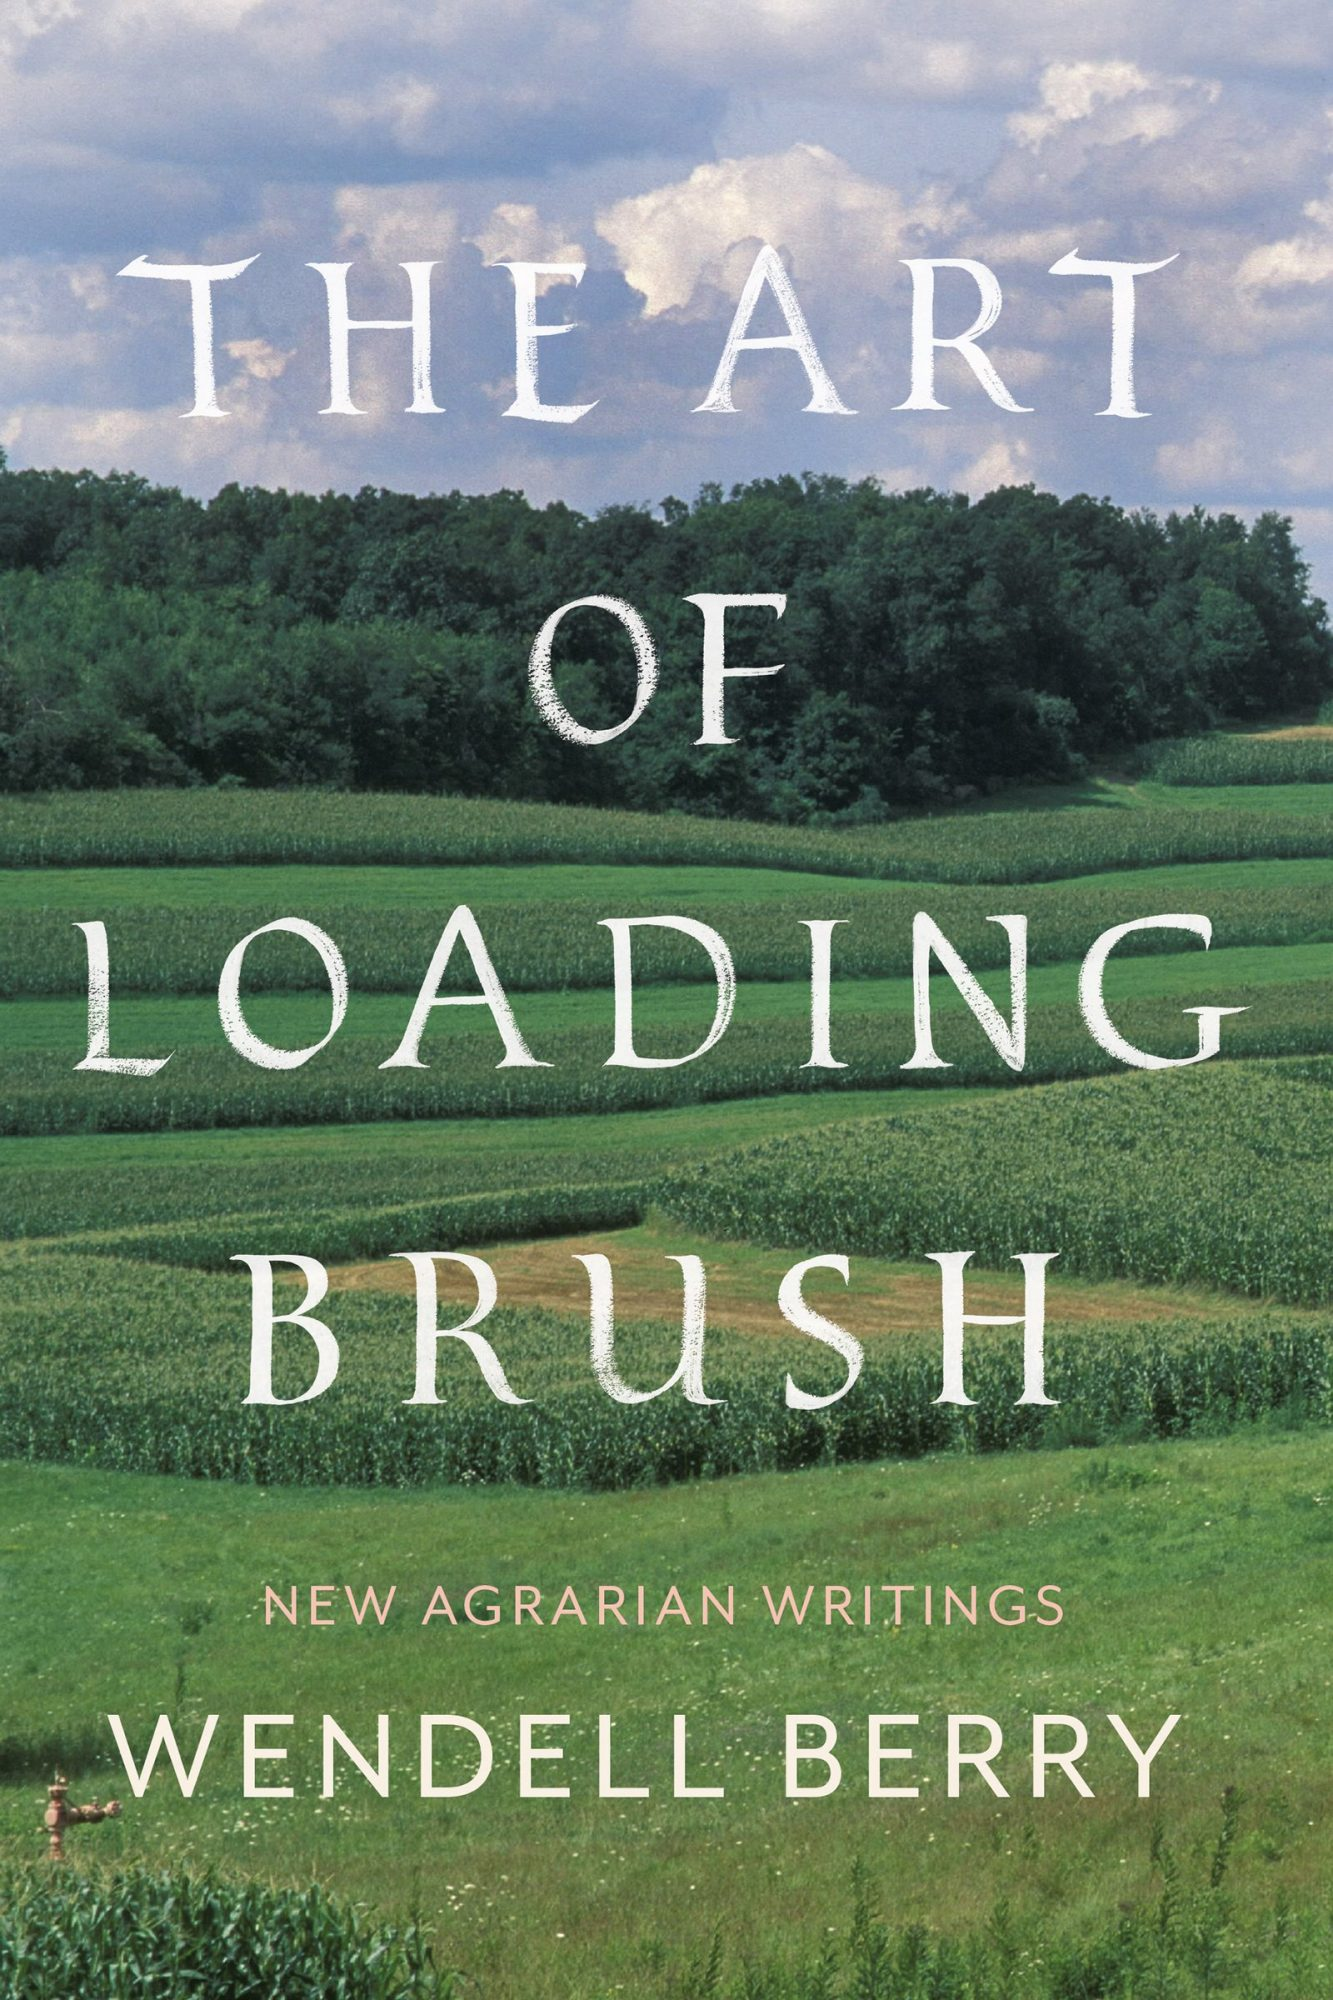 The Art of Loading Brush: New Agrarian Writings by Wendell Berry